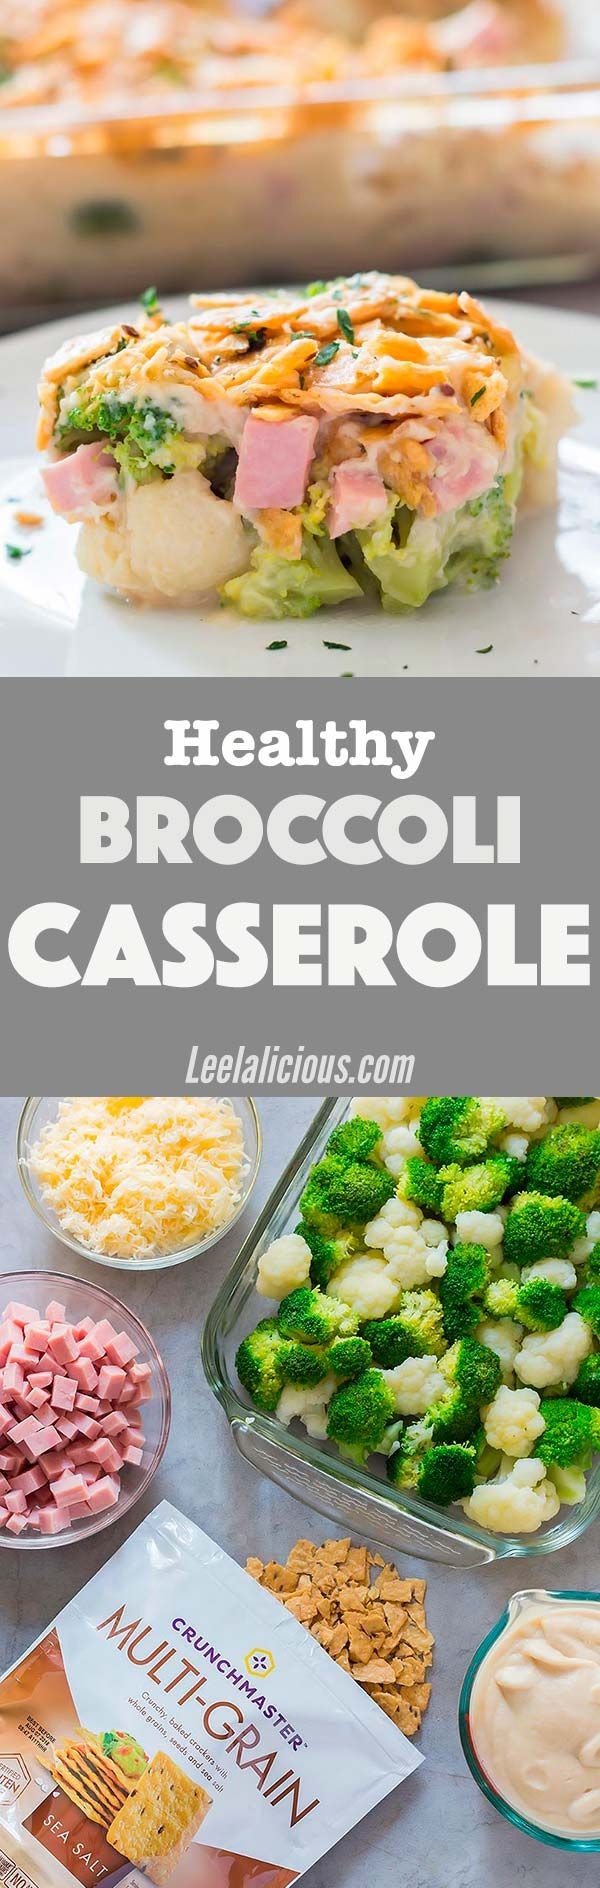 This creamy andHealthy Broccoli Casserole with ham is made with creamy cauliflower sauce. No cream or cans of cream soup whatsoever. A perfect healthy veggie-loaded dish to repurpose leftover ham. Recipe | Easy Dinners | Meal | Chicken | Vegetarian Option | Gluten Free | Clean Eating | Crunchmaster Crackers | Bake #broccoli #ham #casserole